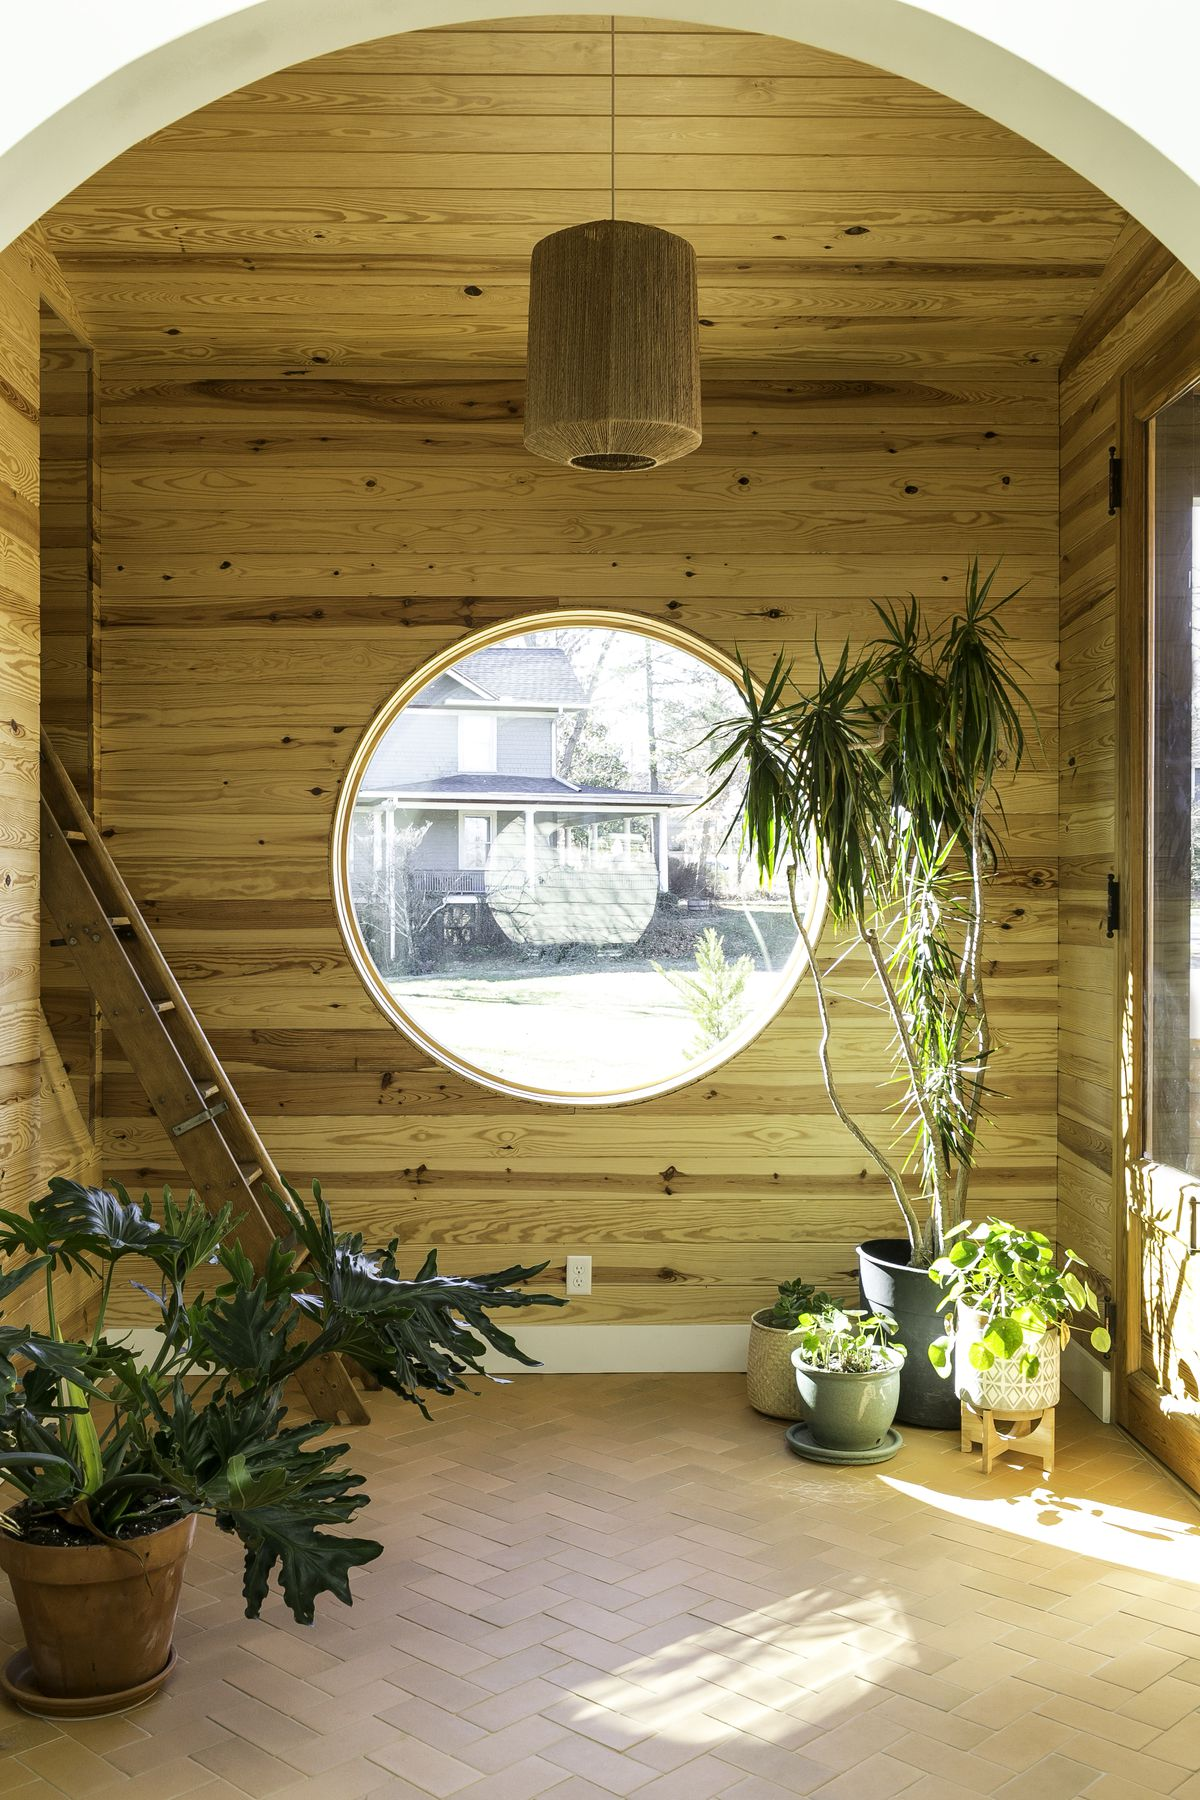 The entryway to the home, has paneled wood, a large round window, tile floor, and many potted plants.